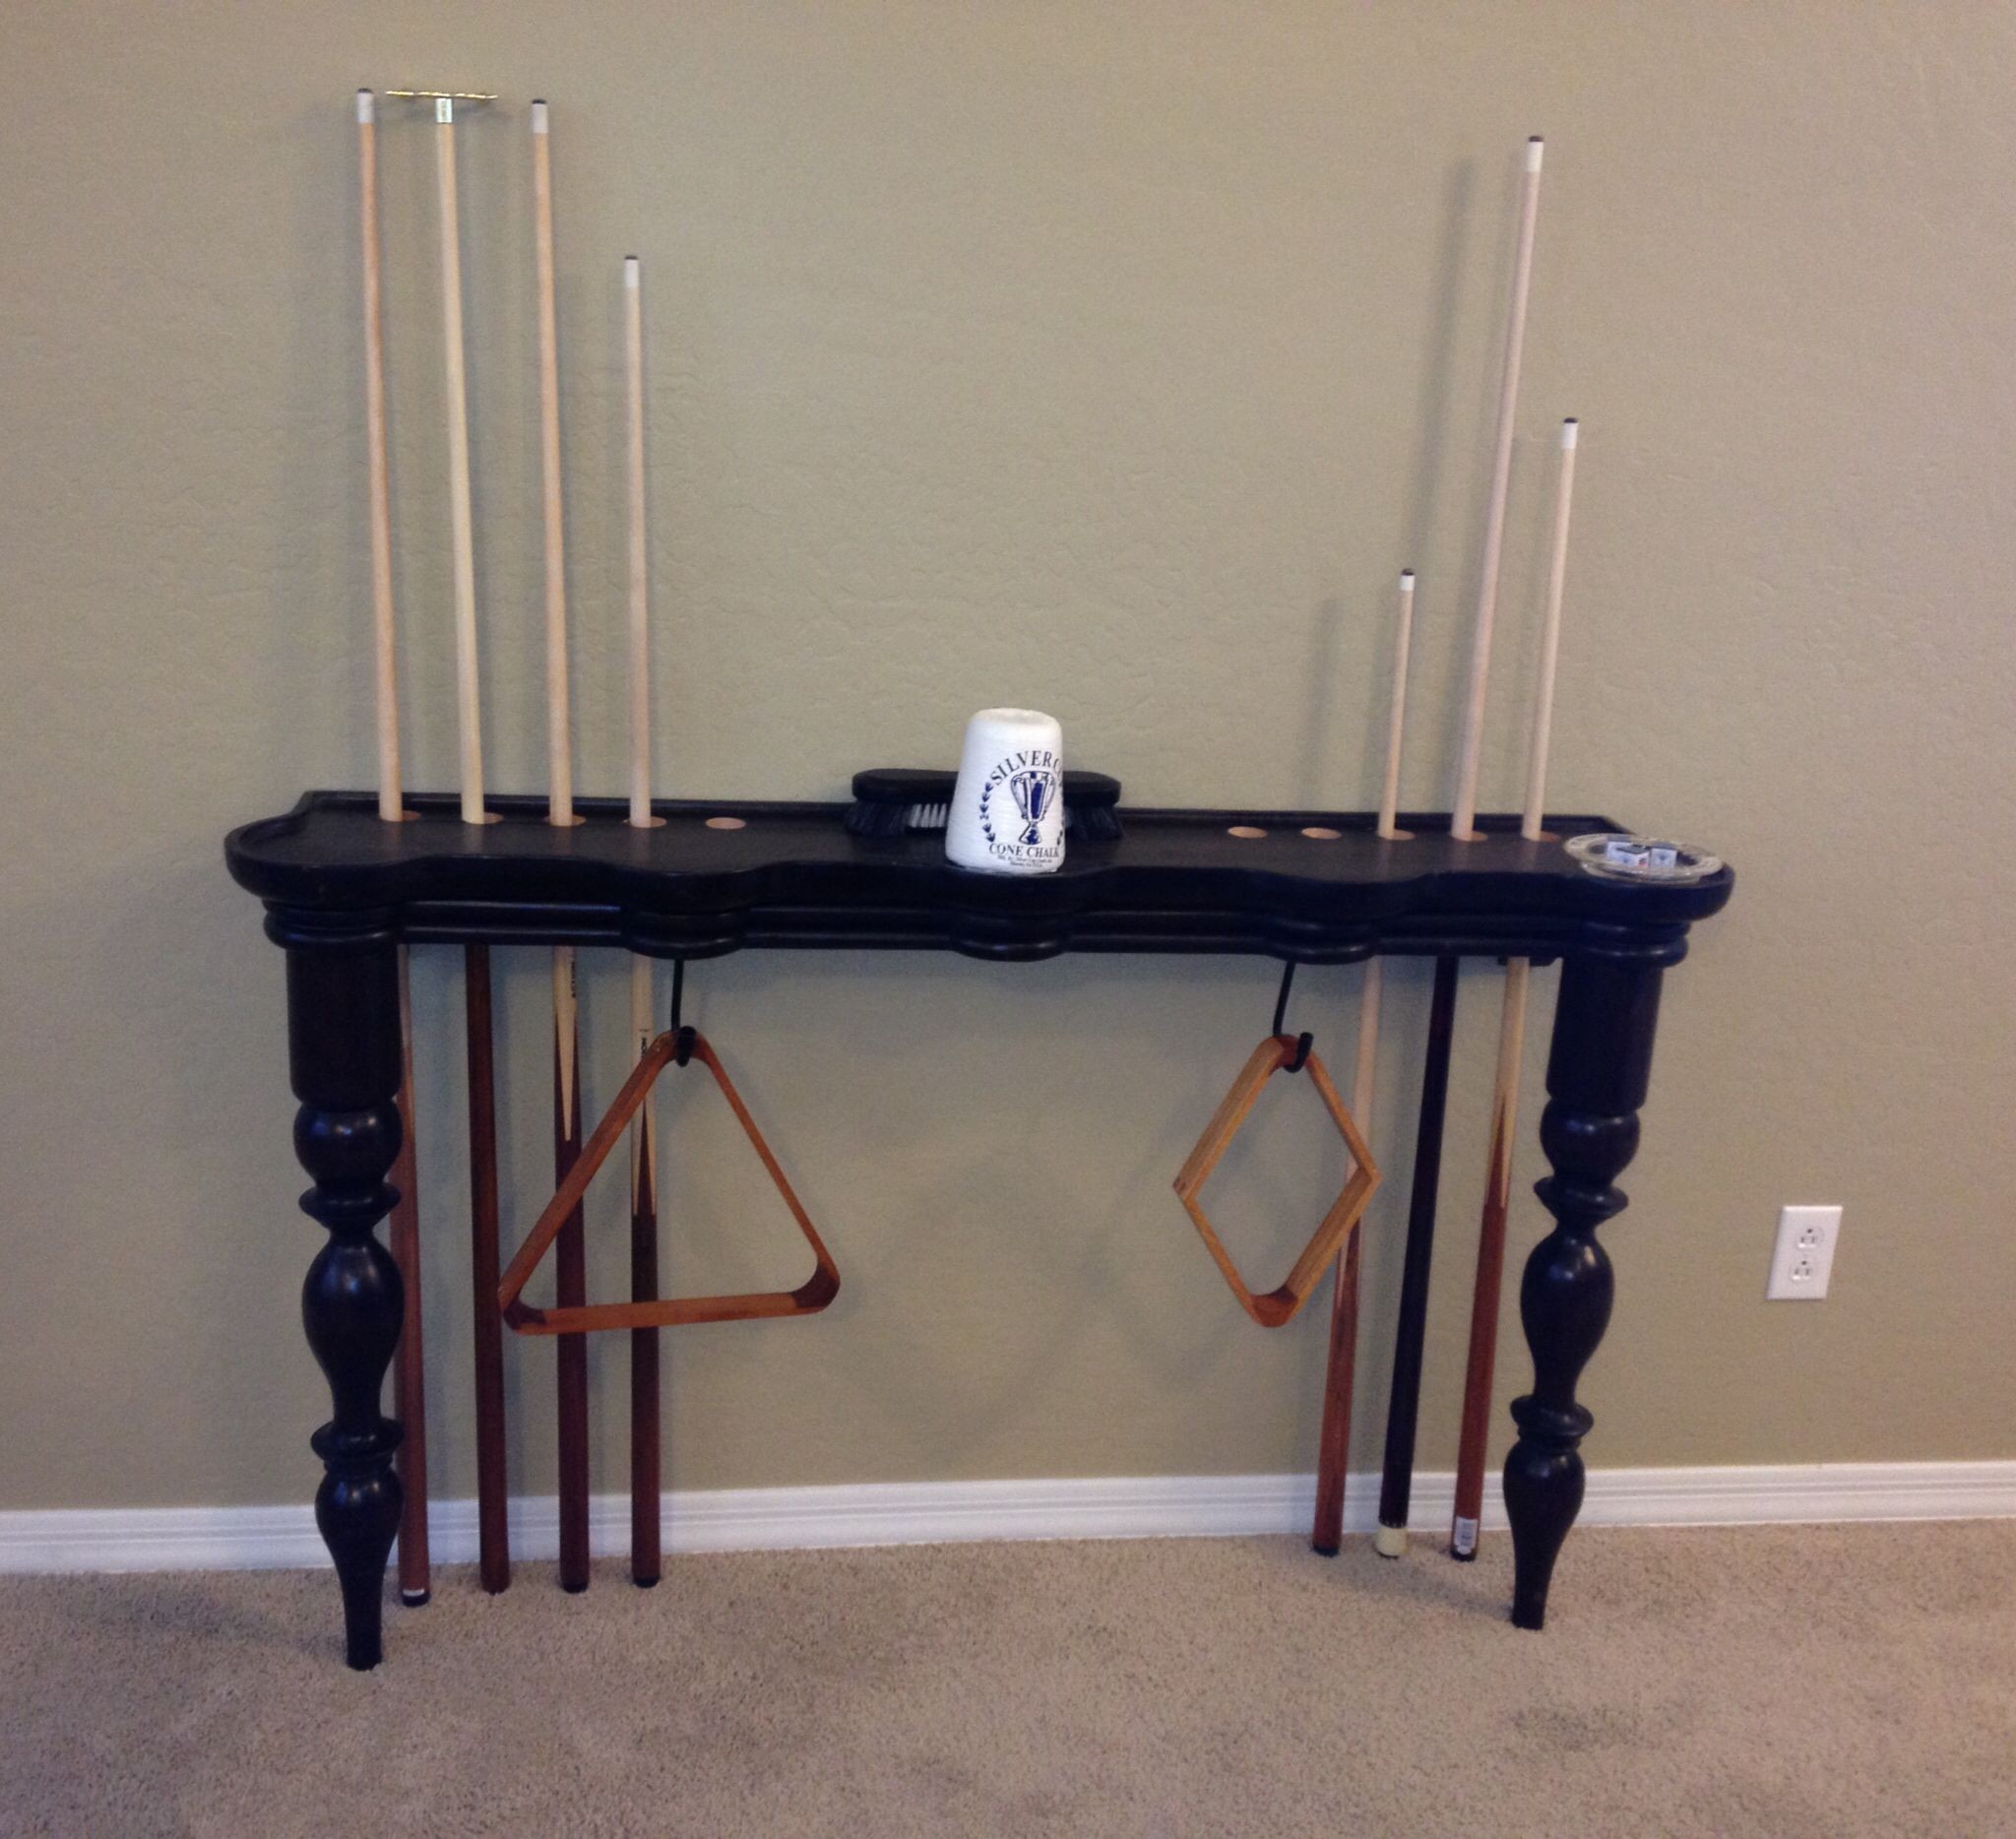 Pool Cue Stick Holder Made From Modified Sofa Table